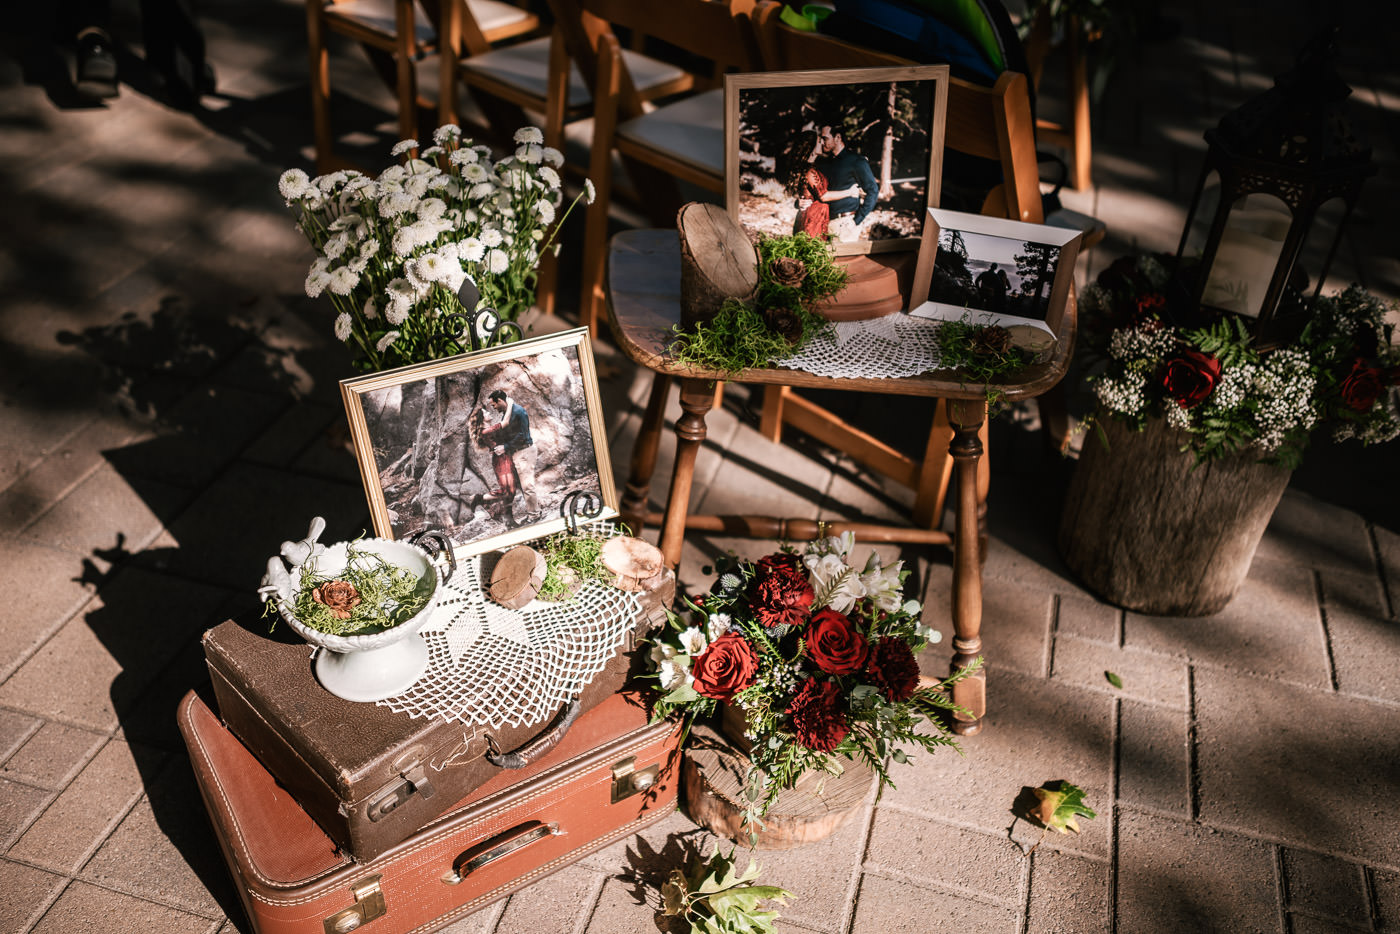 Old suitcases, and flower bouquets showcase the couples engagement photos at their ceremony.